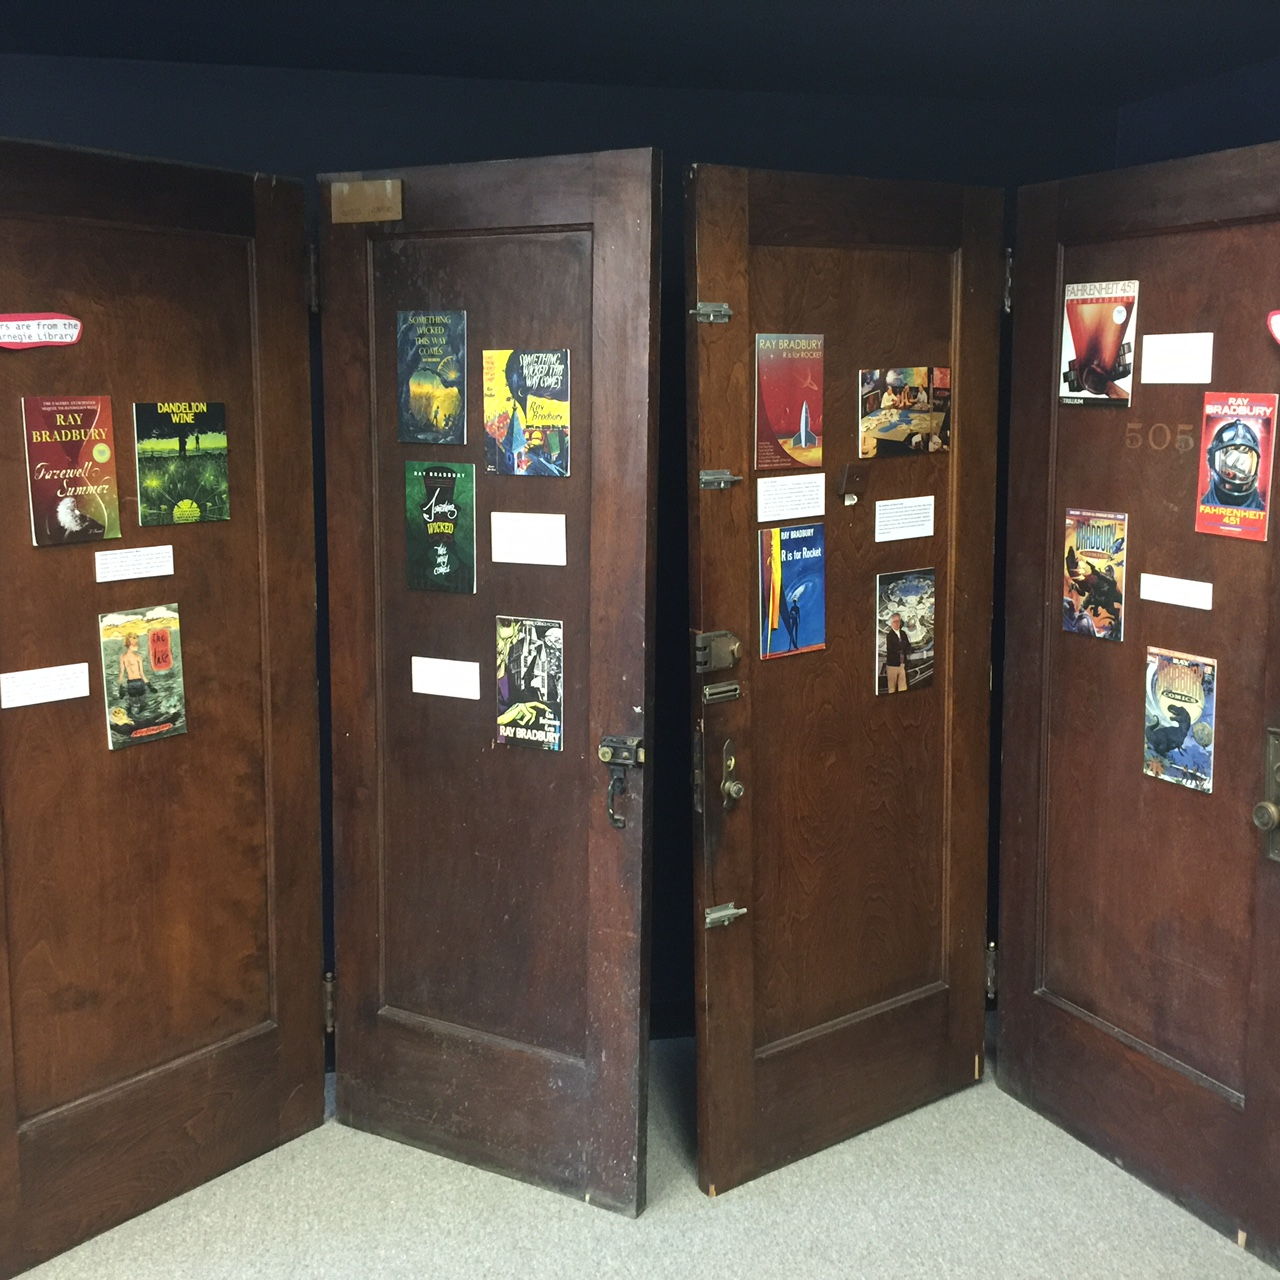 The Carnegie Library doors, currently on display at the Ray Bradbury Carnegie Library hub